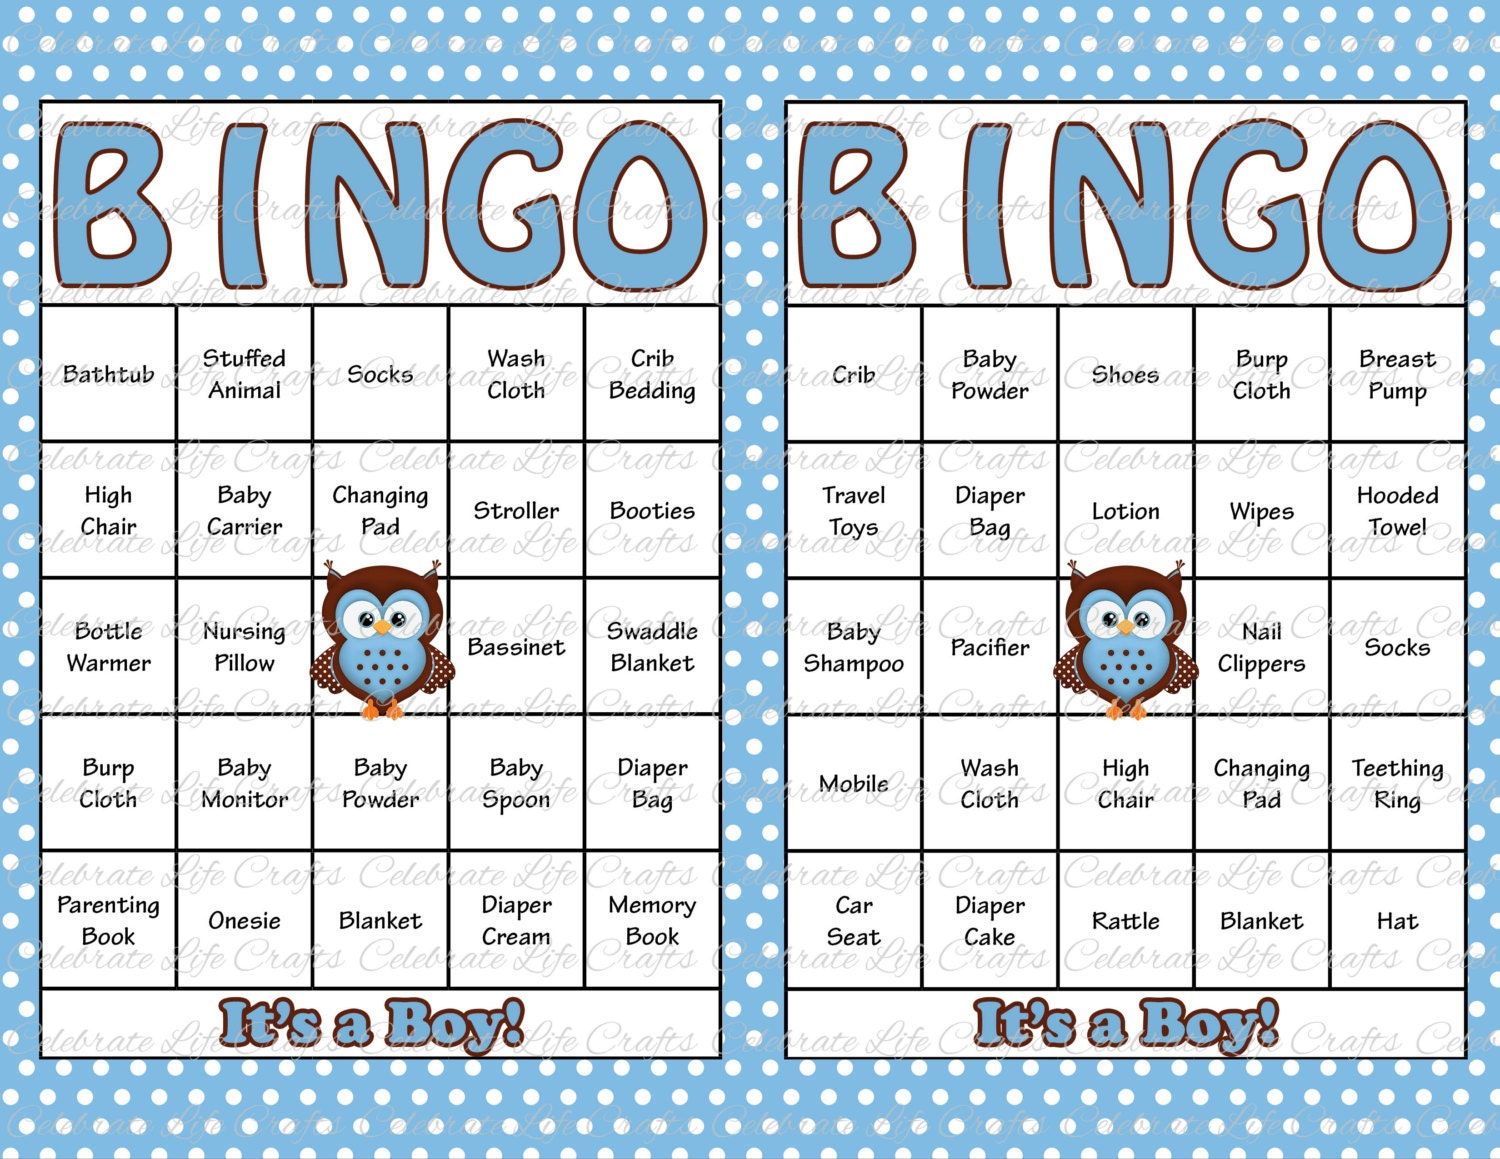 It's just a photo of Gorgeous Printable Baby Bingo Cards